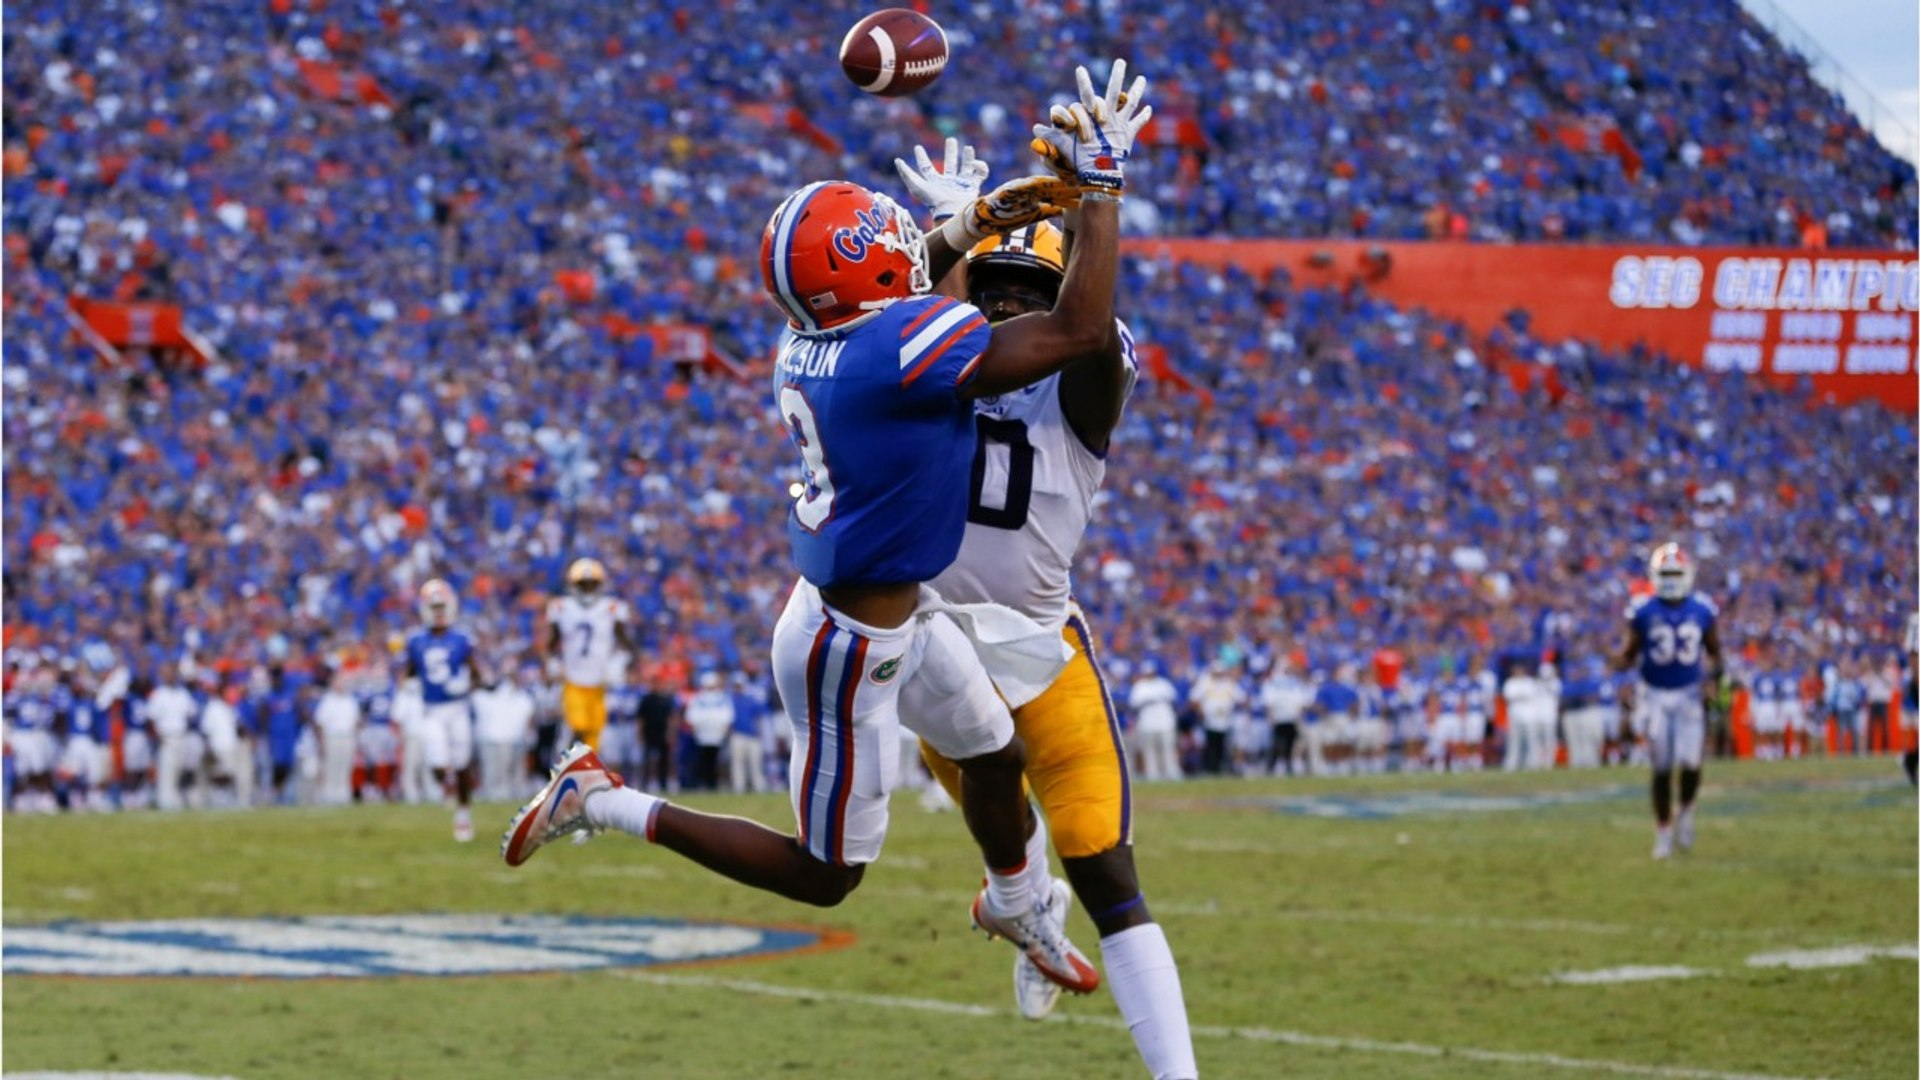 LSU, USC Lead Football Players In NFL This Year